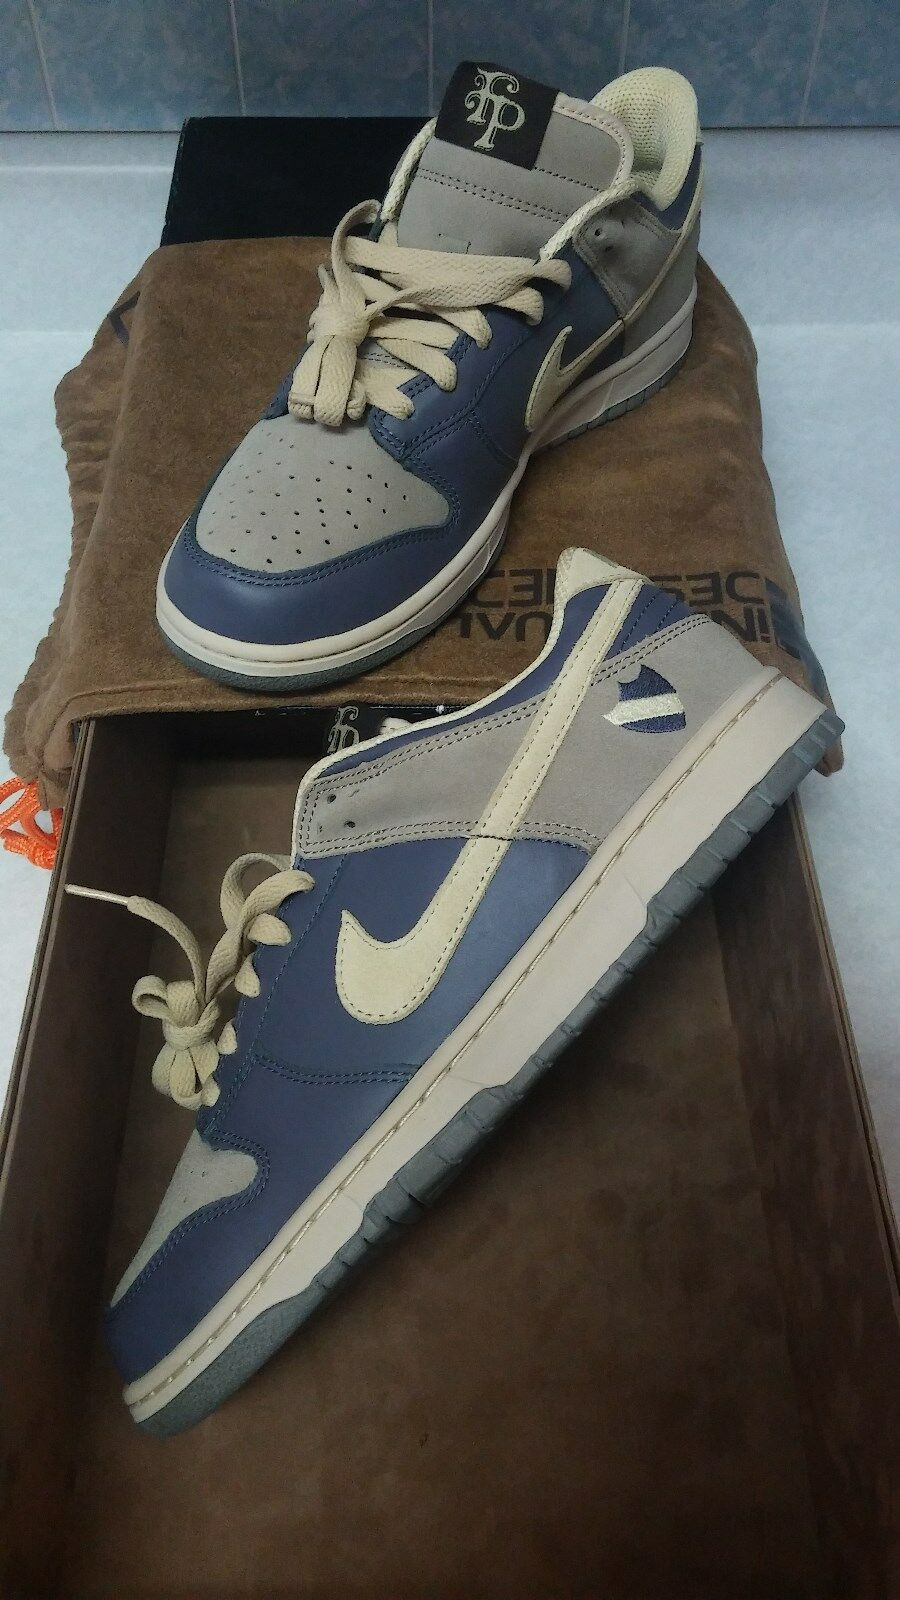 NIKE DUNK ID 10.5 FLAMENGO PARK ULTRA RARE COLLECTORS   CLASSY blueE  COOL GREY